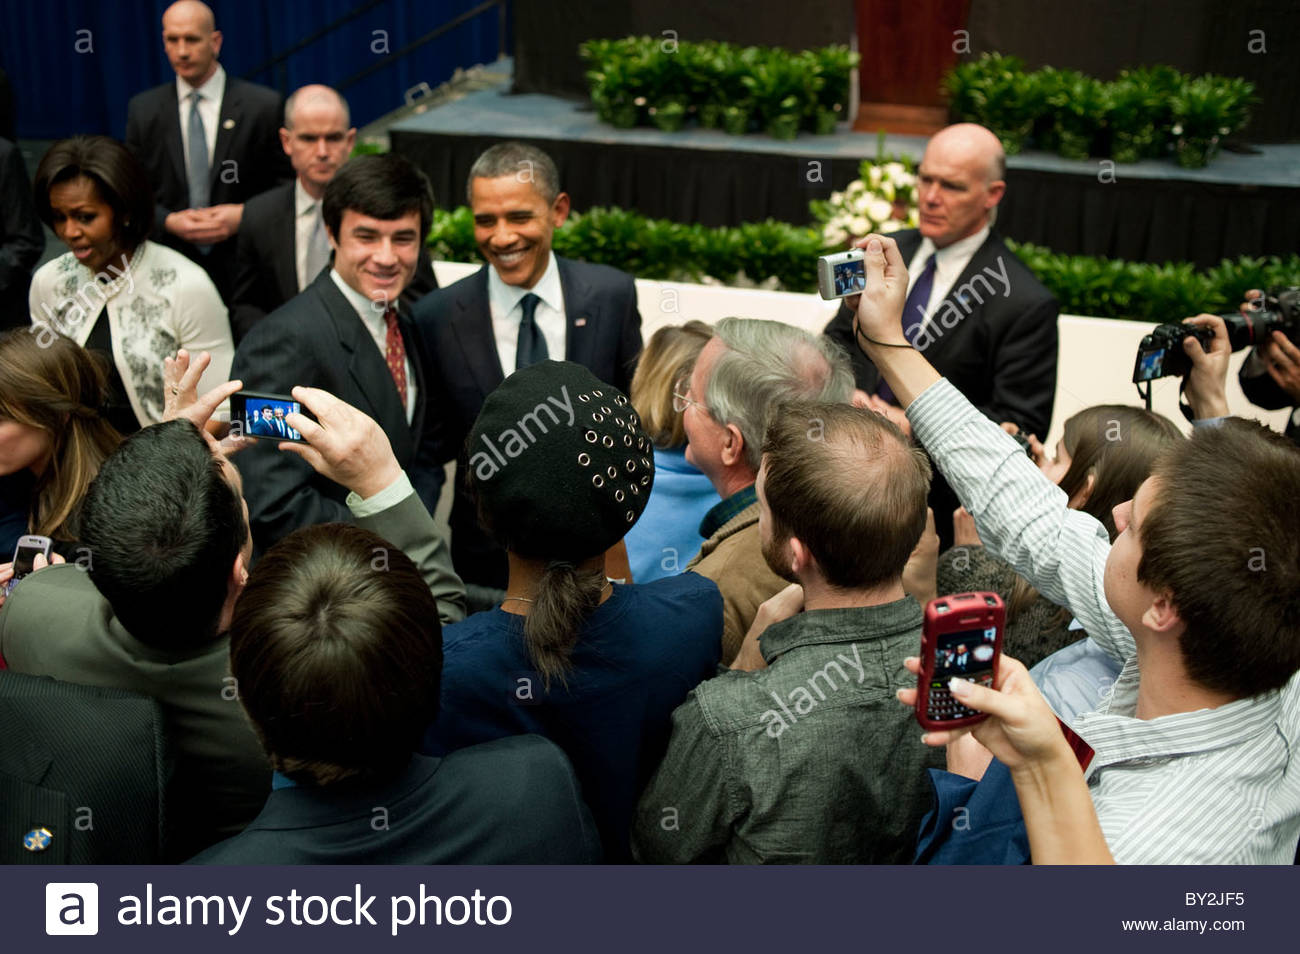 President Barack Obama greeting victims and victims familys after  the memorial event, Tucson Arizona - Stock Image